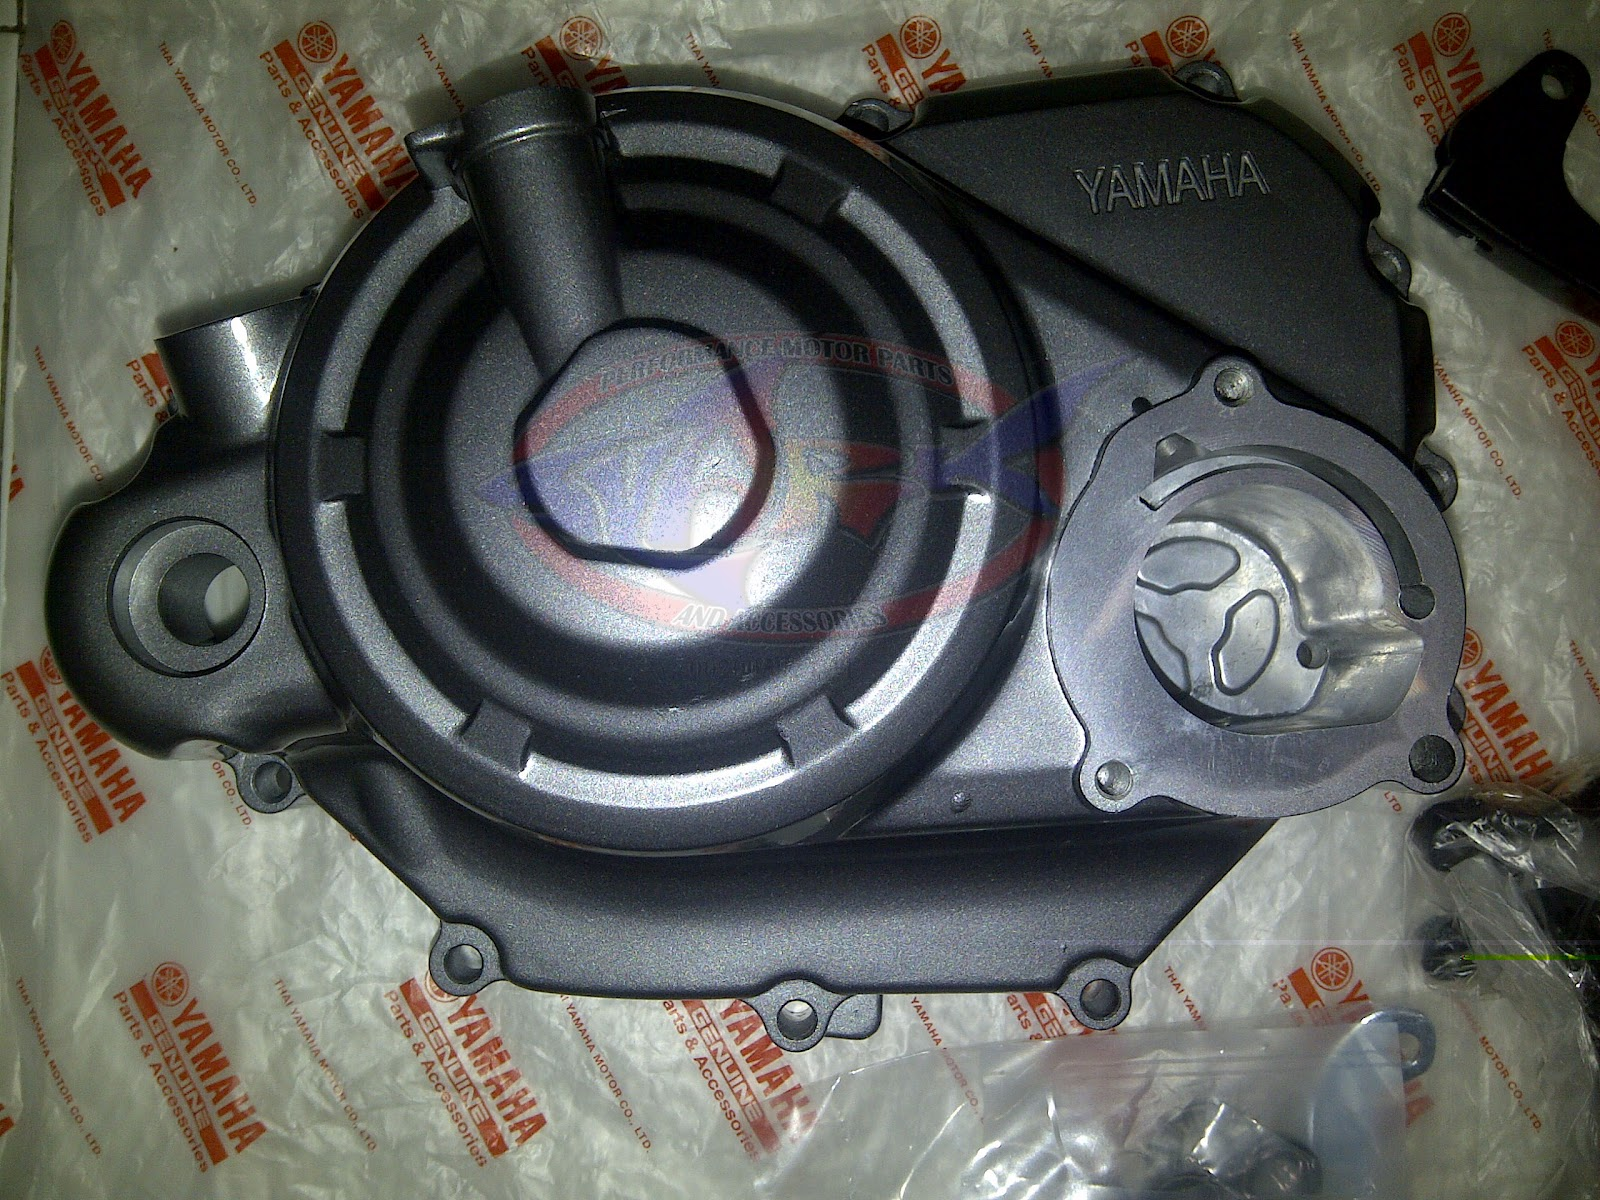 Syark Performance Motor Parts And Accessories Online Shop Est Yamaha Lagenda Wiring Diagram New Manual Handclutch For 115z Jupiter Crypton Vega Force 115 Genuine Product By